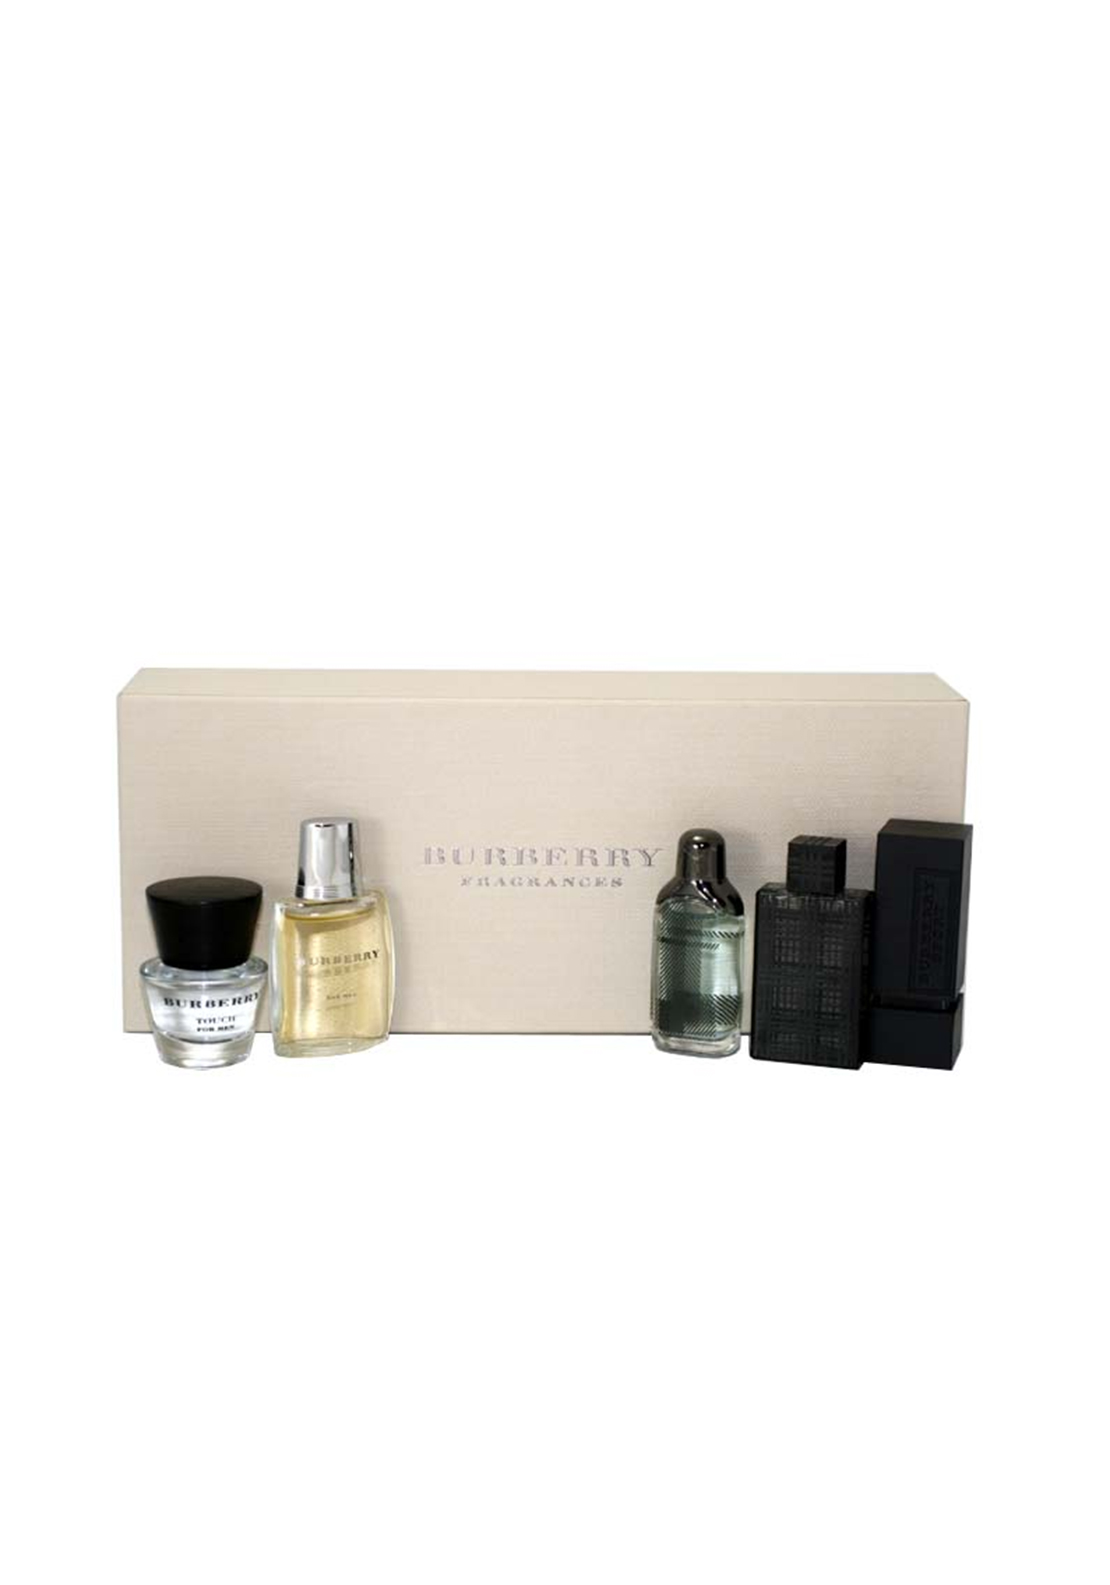 The Burberry Collection of Fragrances for Men